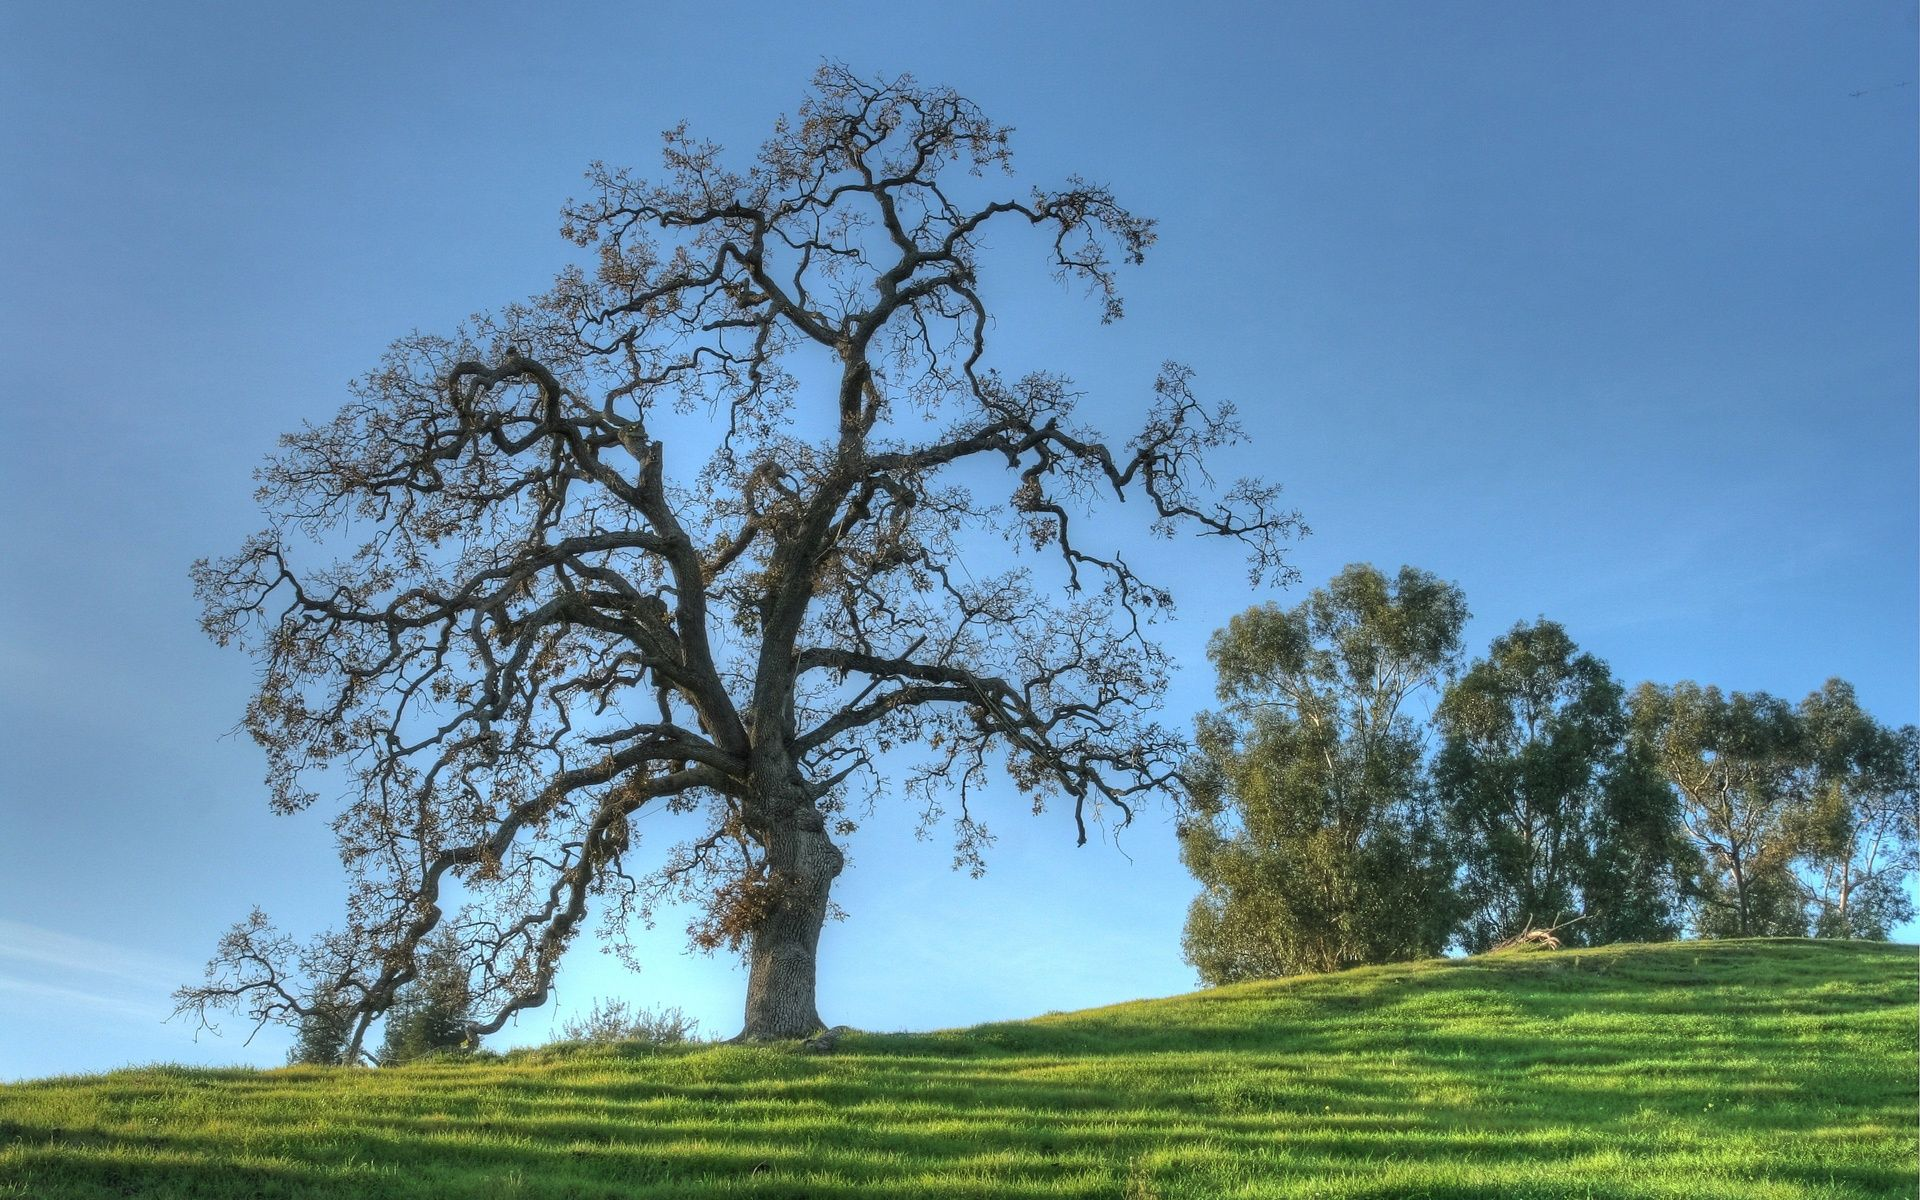   Oak Trees in Winter 1920x1200 wallpaper download page ... Pictures Trees In Winter Pinterest